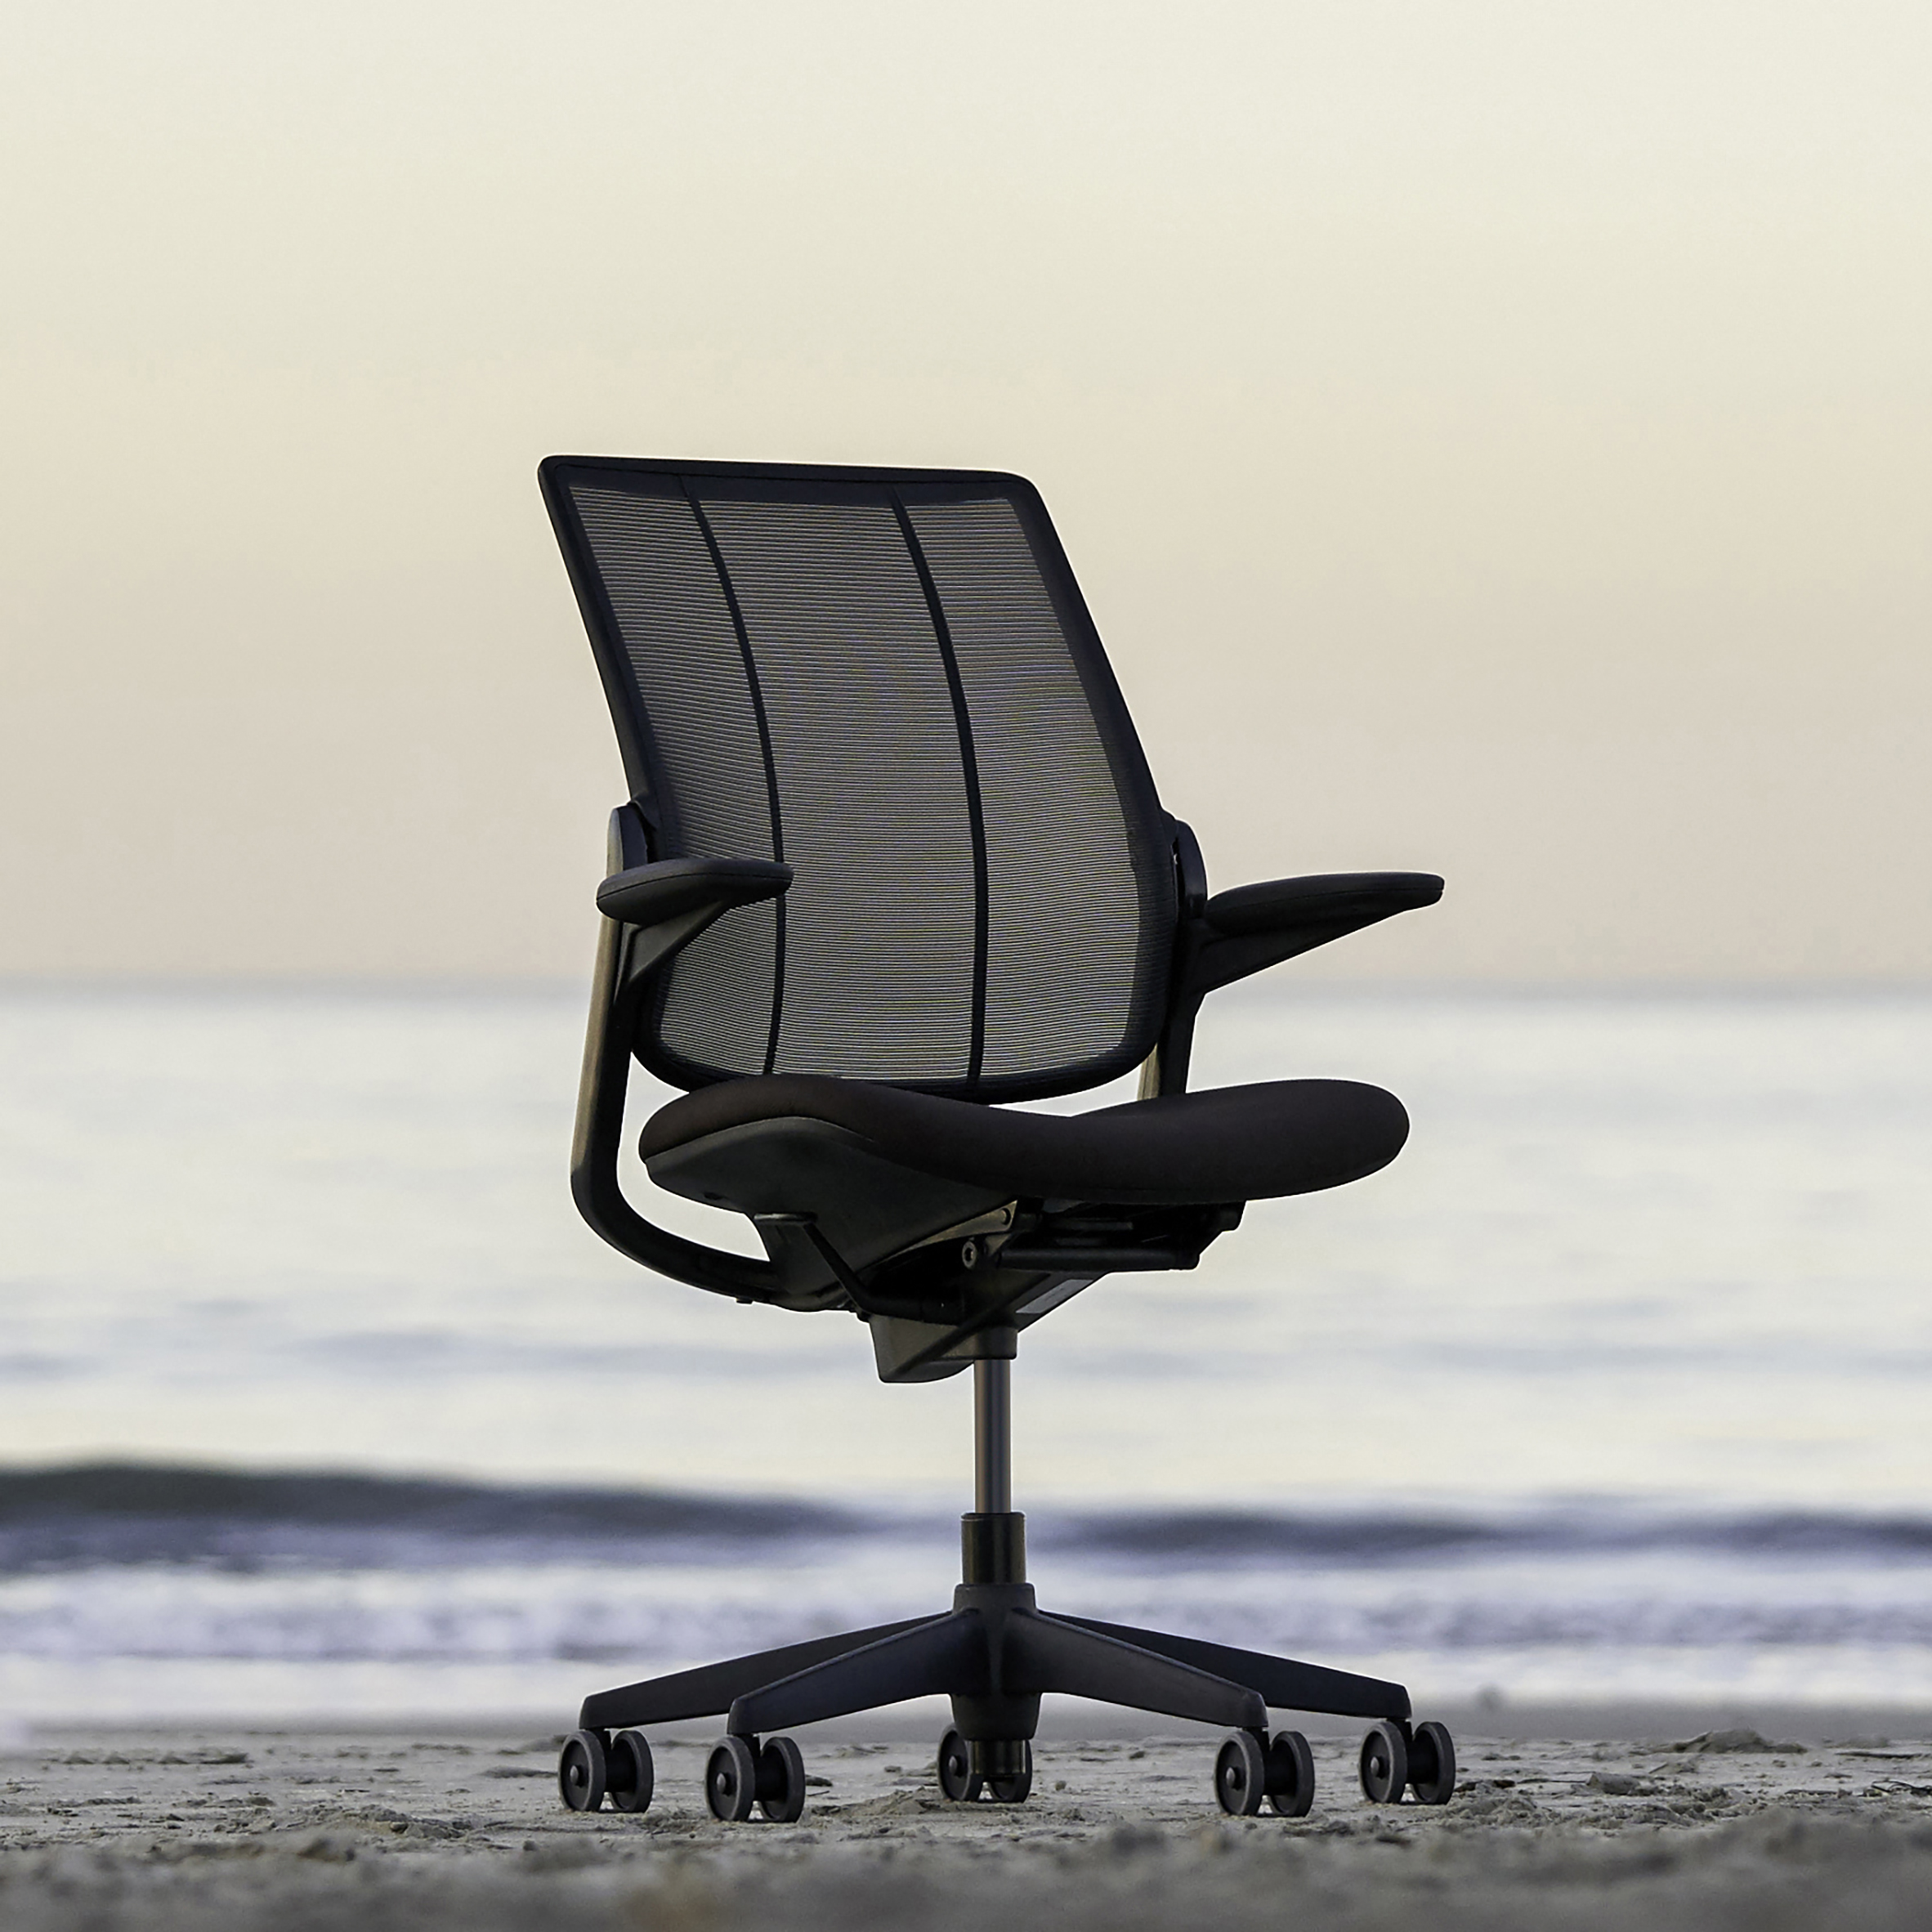 Smart Ocean chair by Niels Diffrient for Humanscale